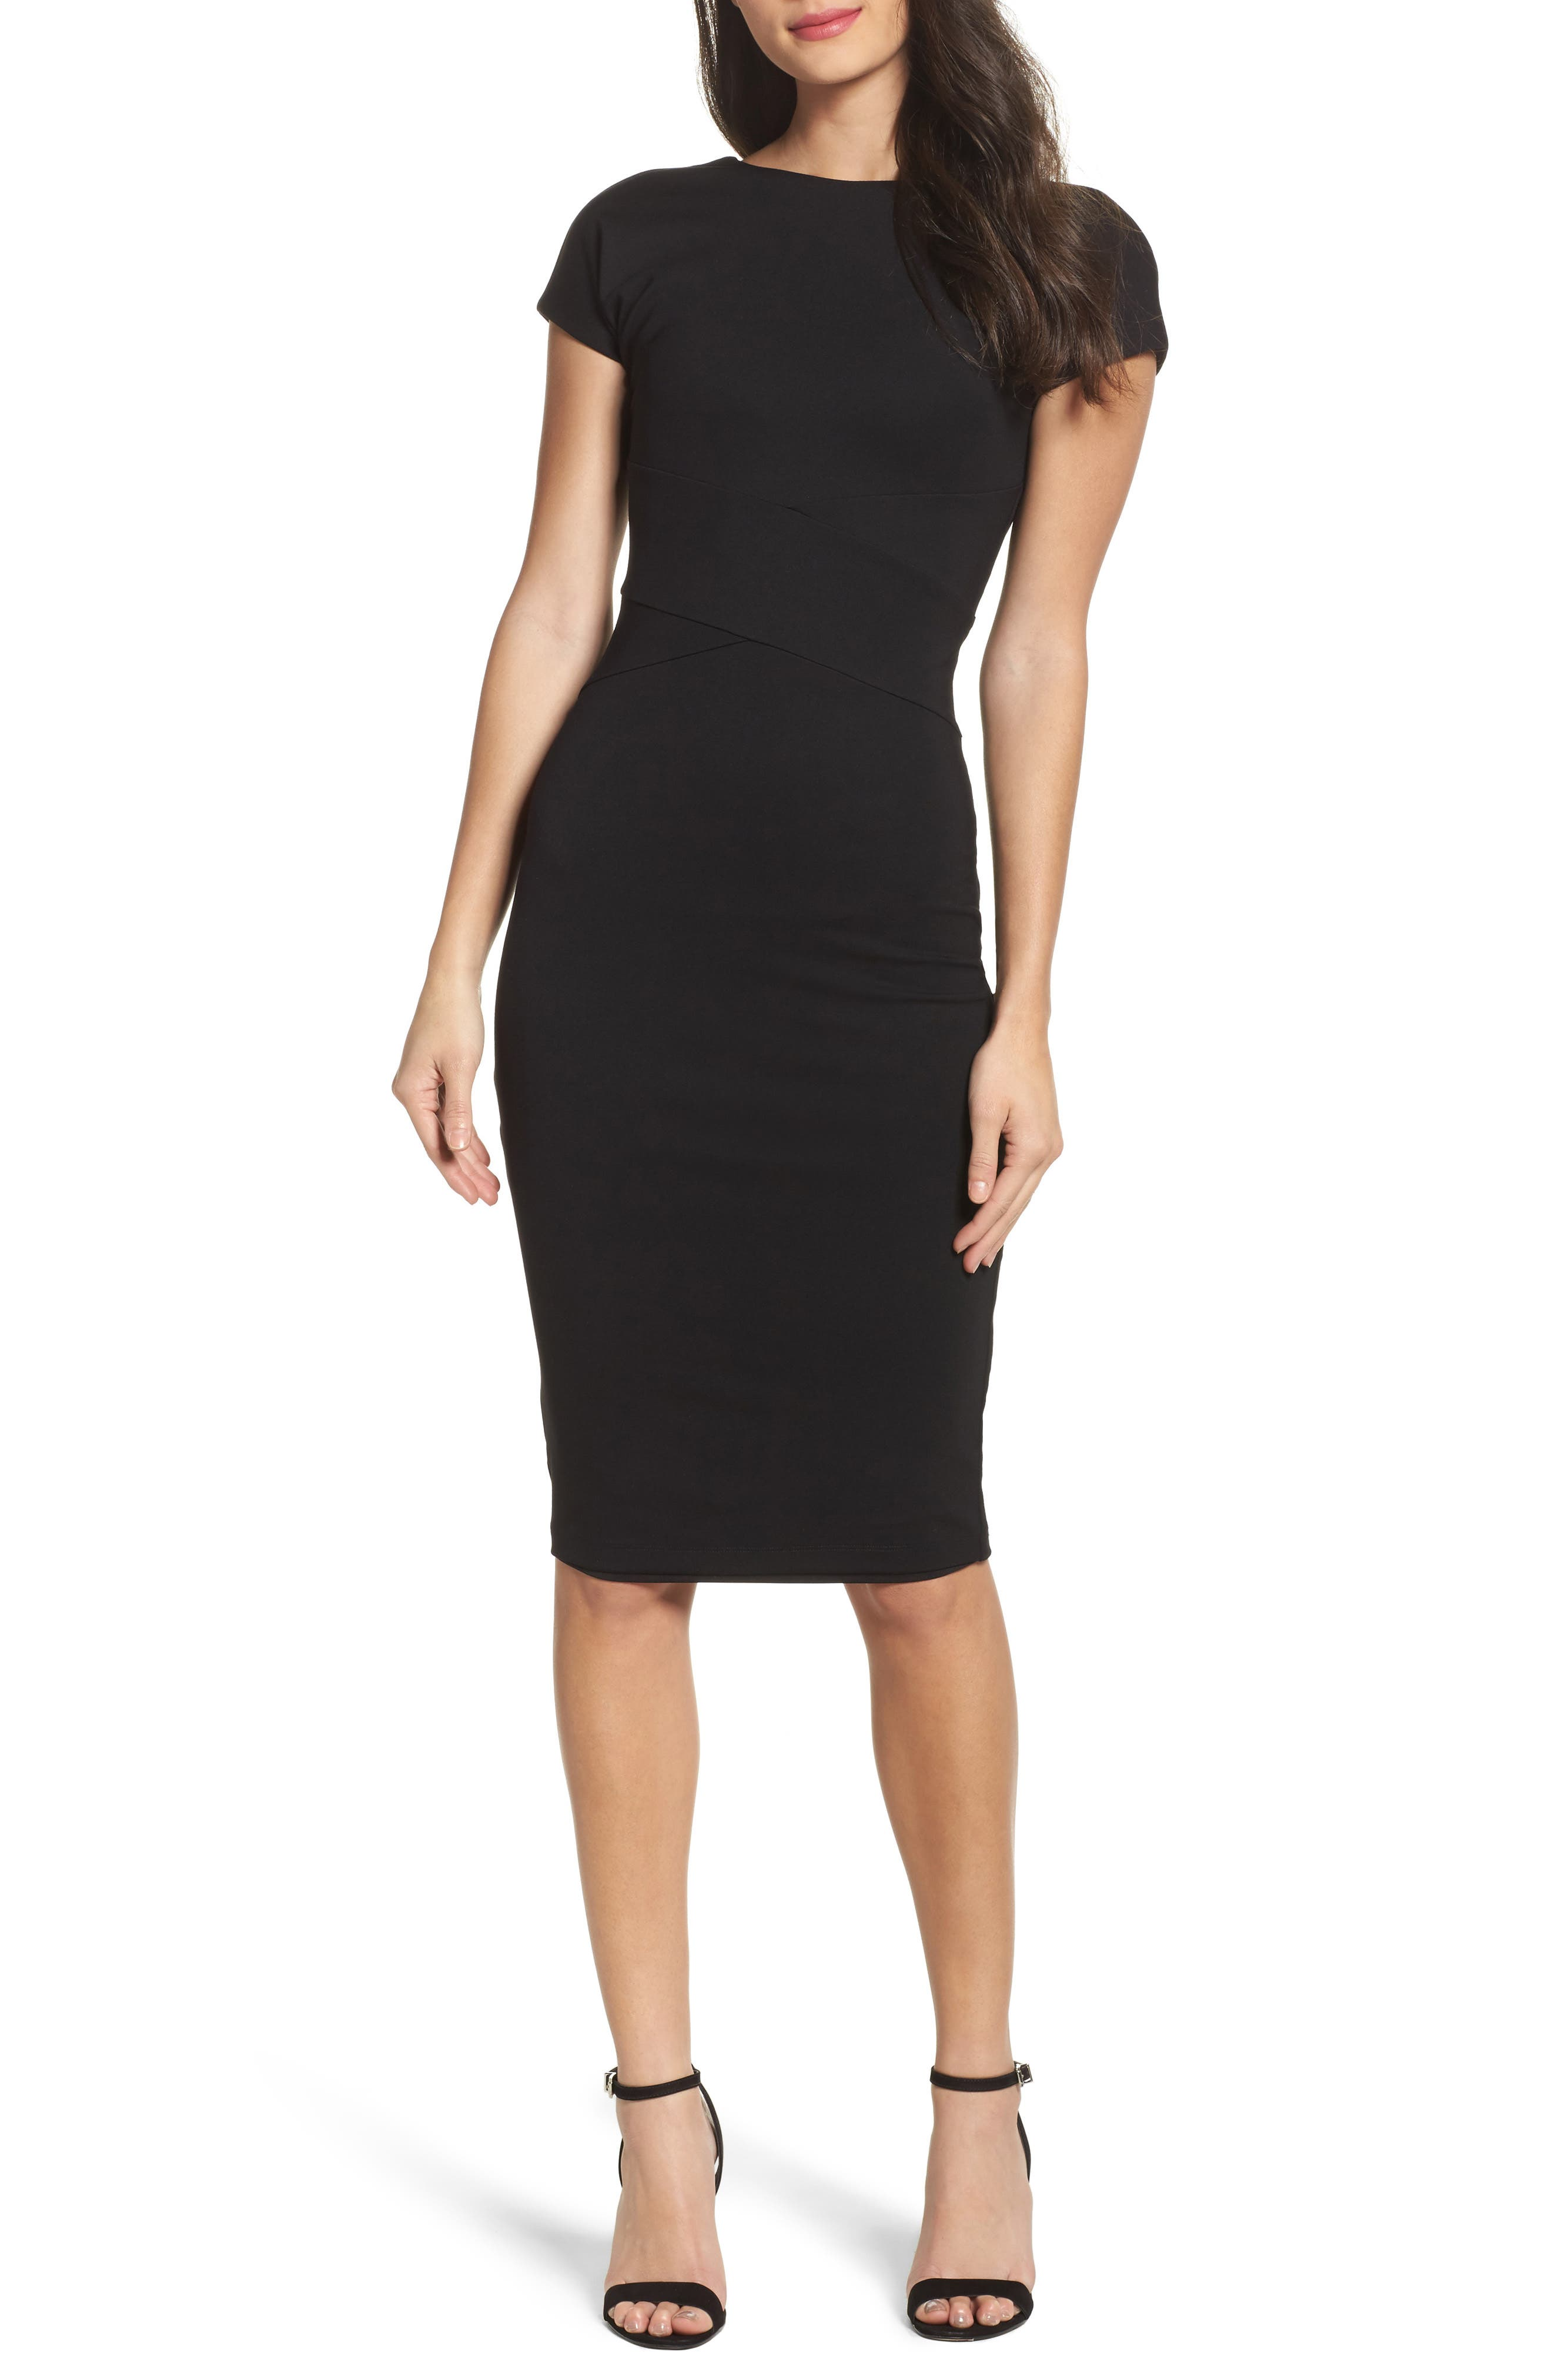 Ali & Jay Champs Élysées Ponte Knit Sheath Dress